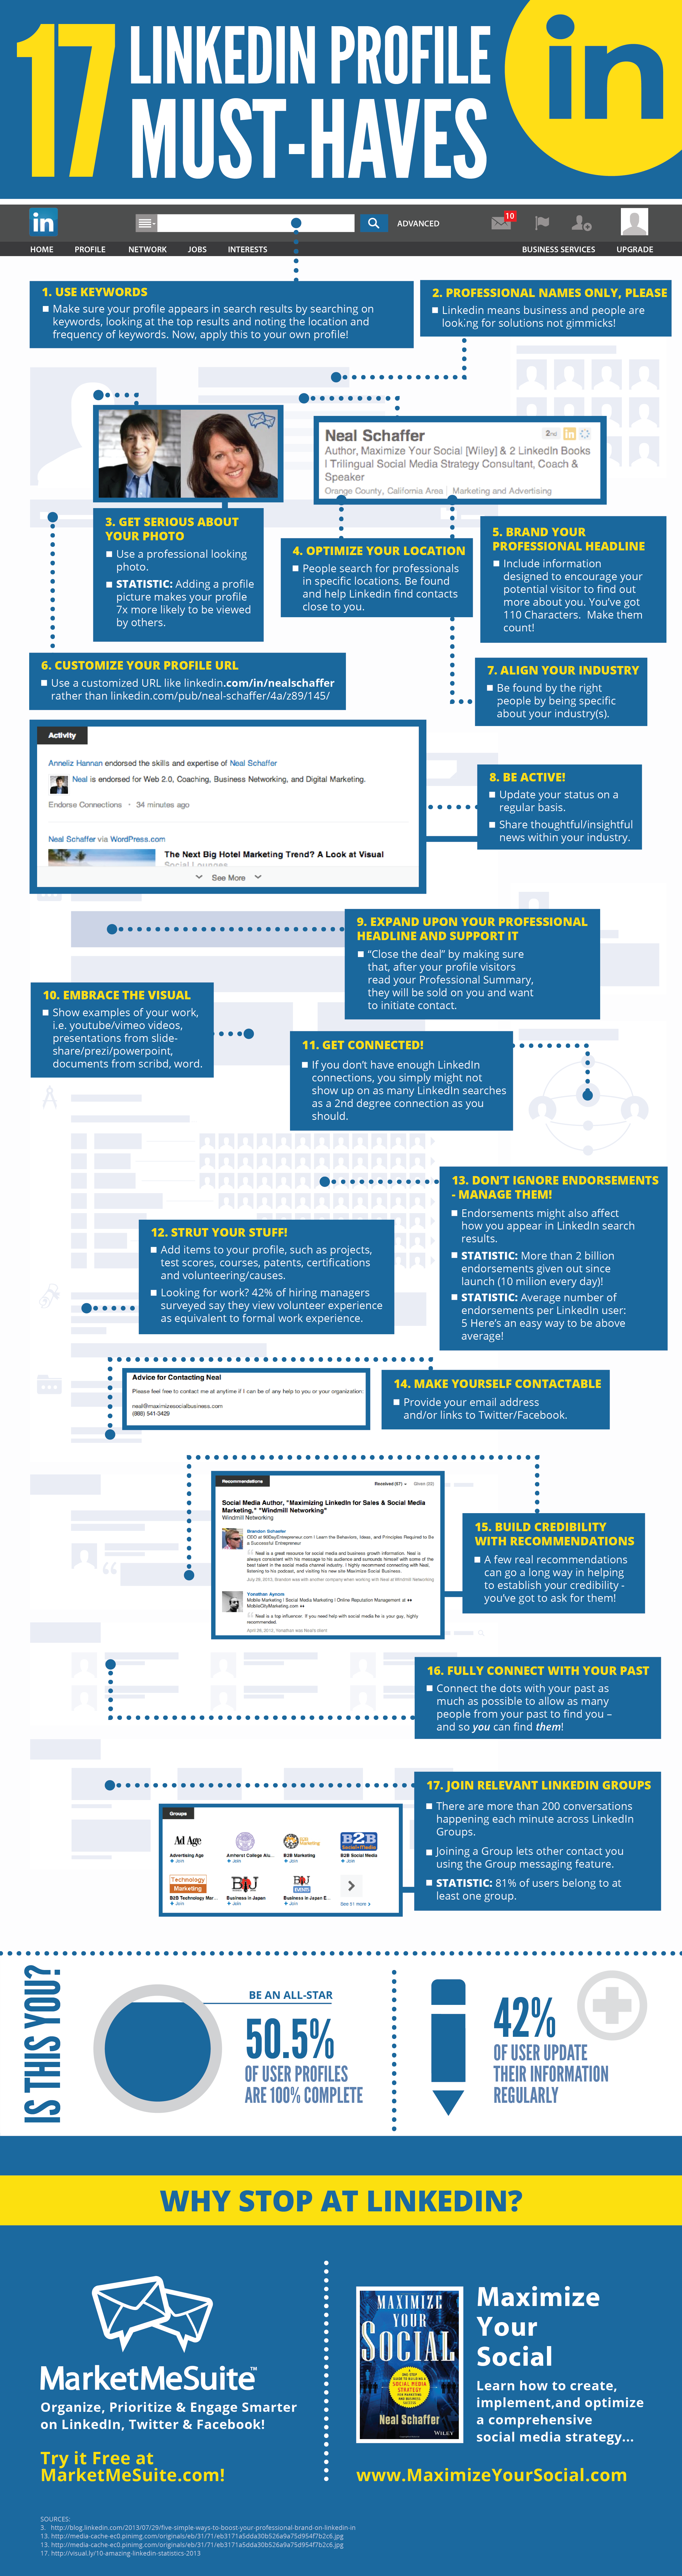 Ace-LinkedIn-With-These-17-Profile-Must-Haves-Infographic